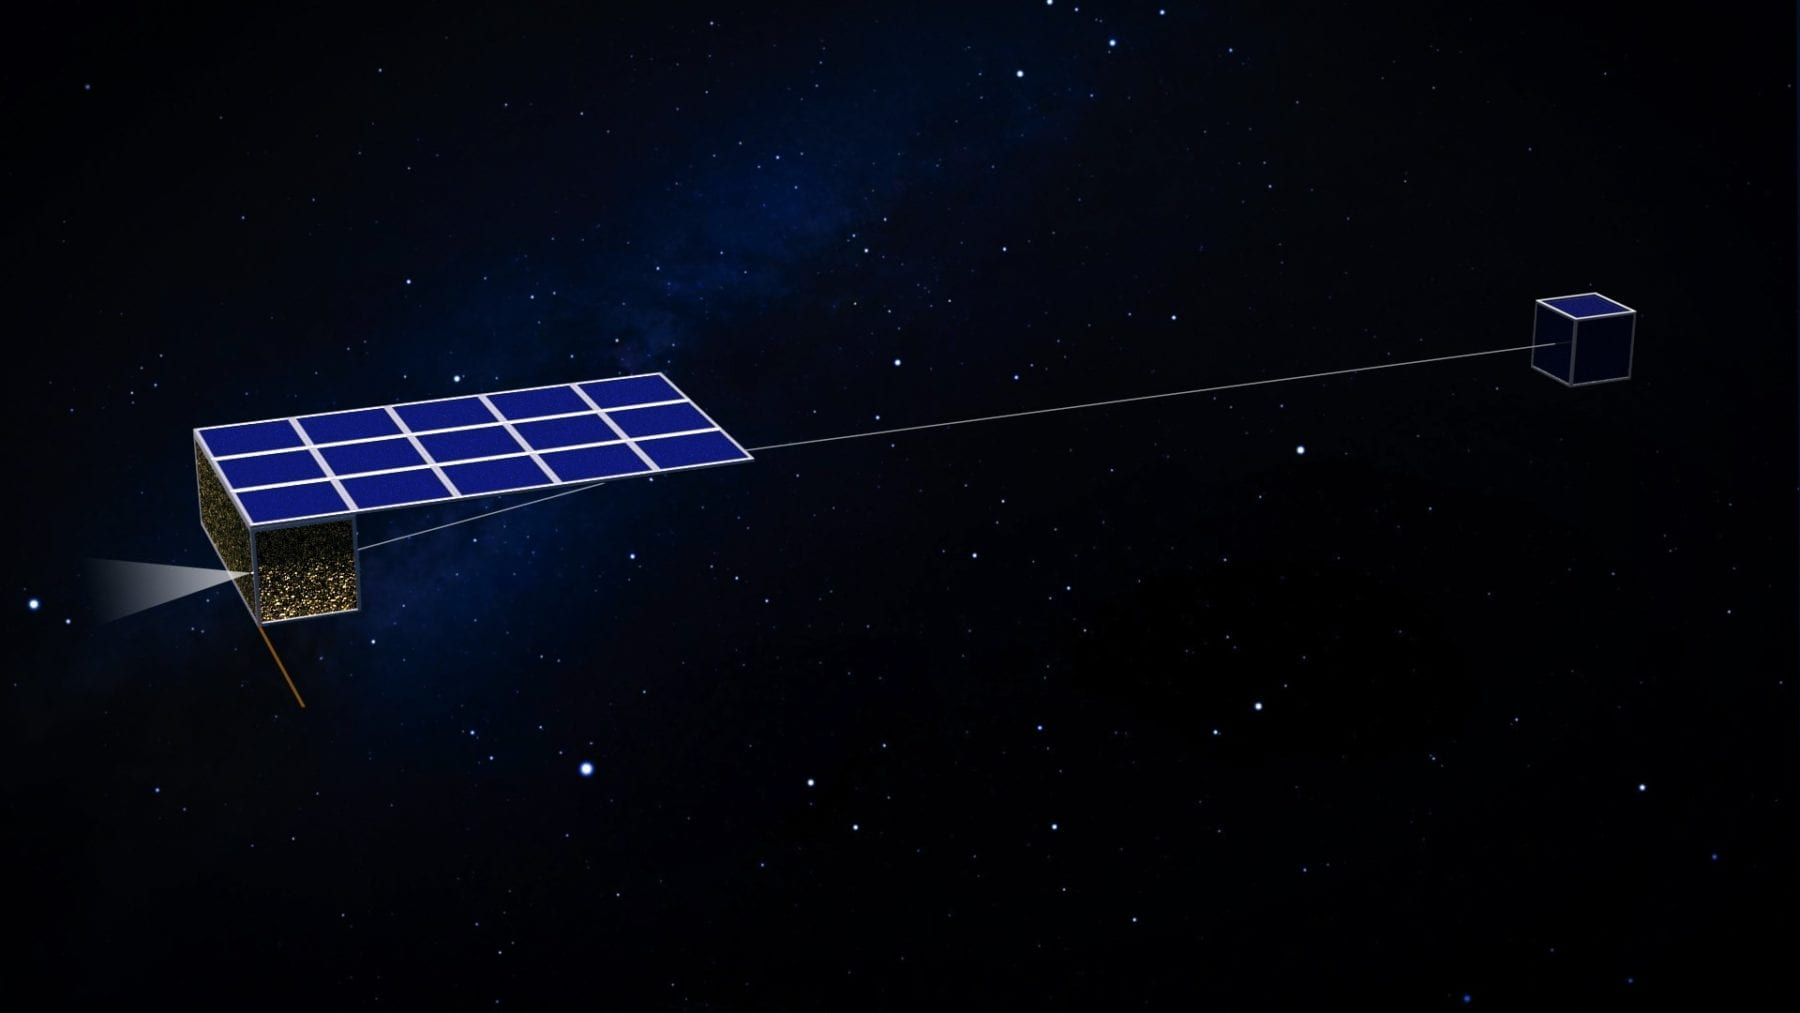 Asteroid Touring Nanosat Fleet could visit 300 asteroids in 3 years